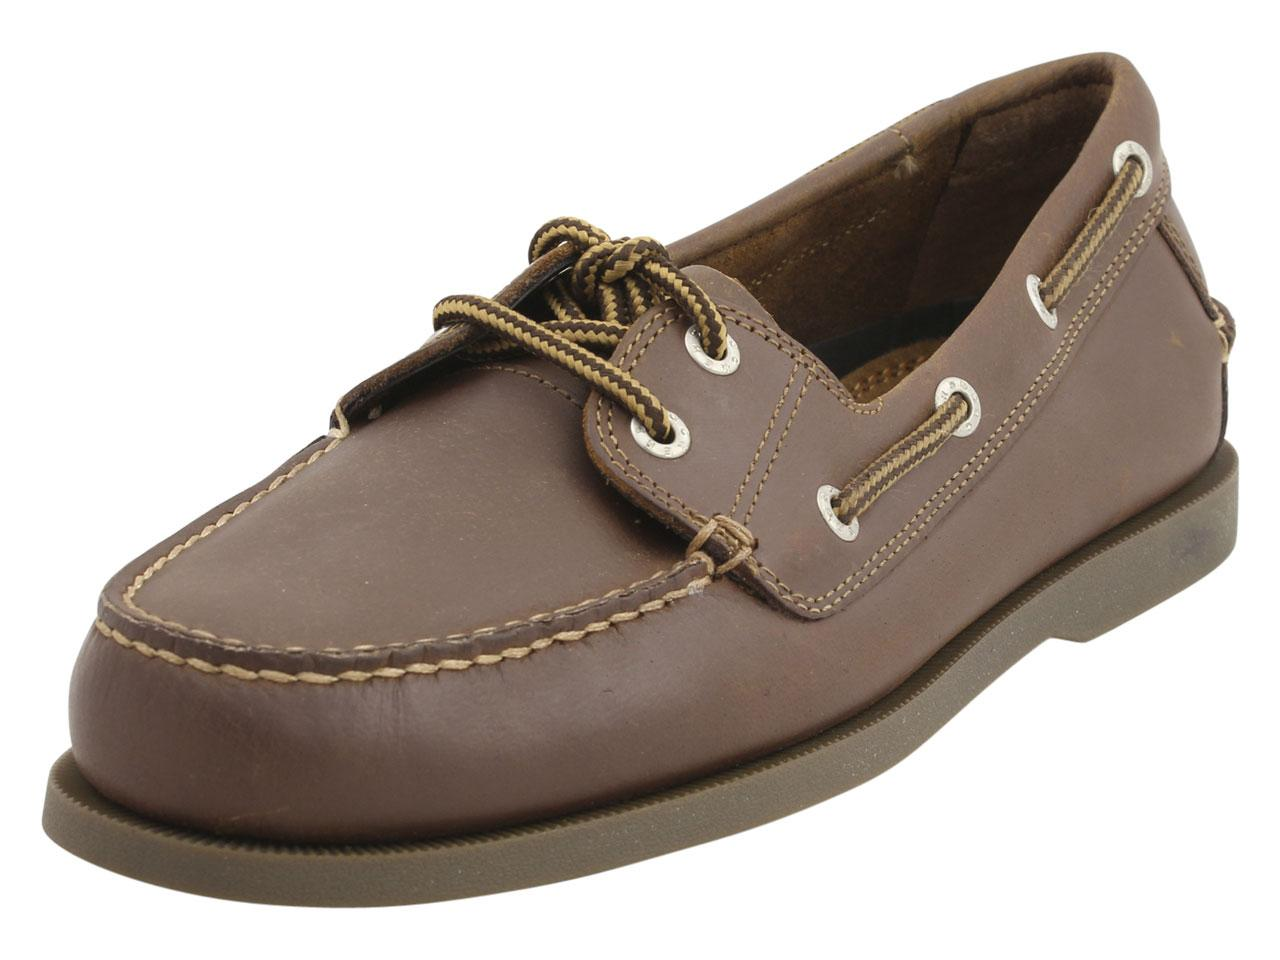 Image of Dockers Men's Vargas Loafers Boat Shoes - Brown - 11 D(M) US